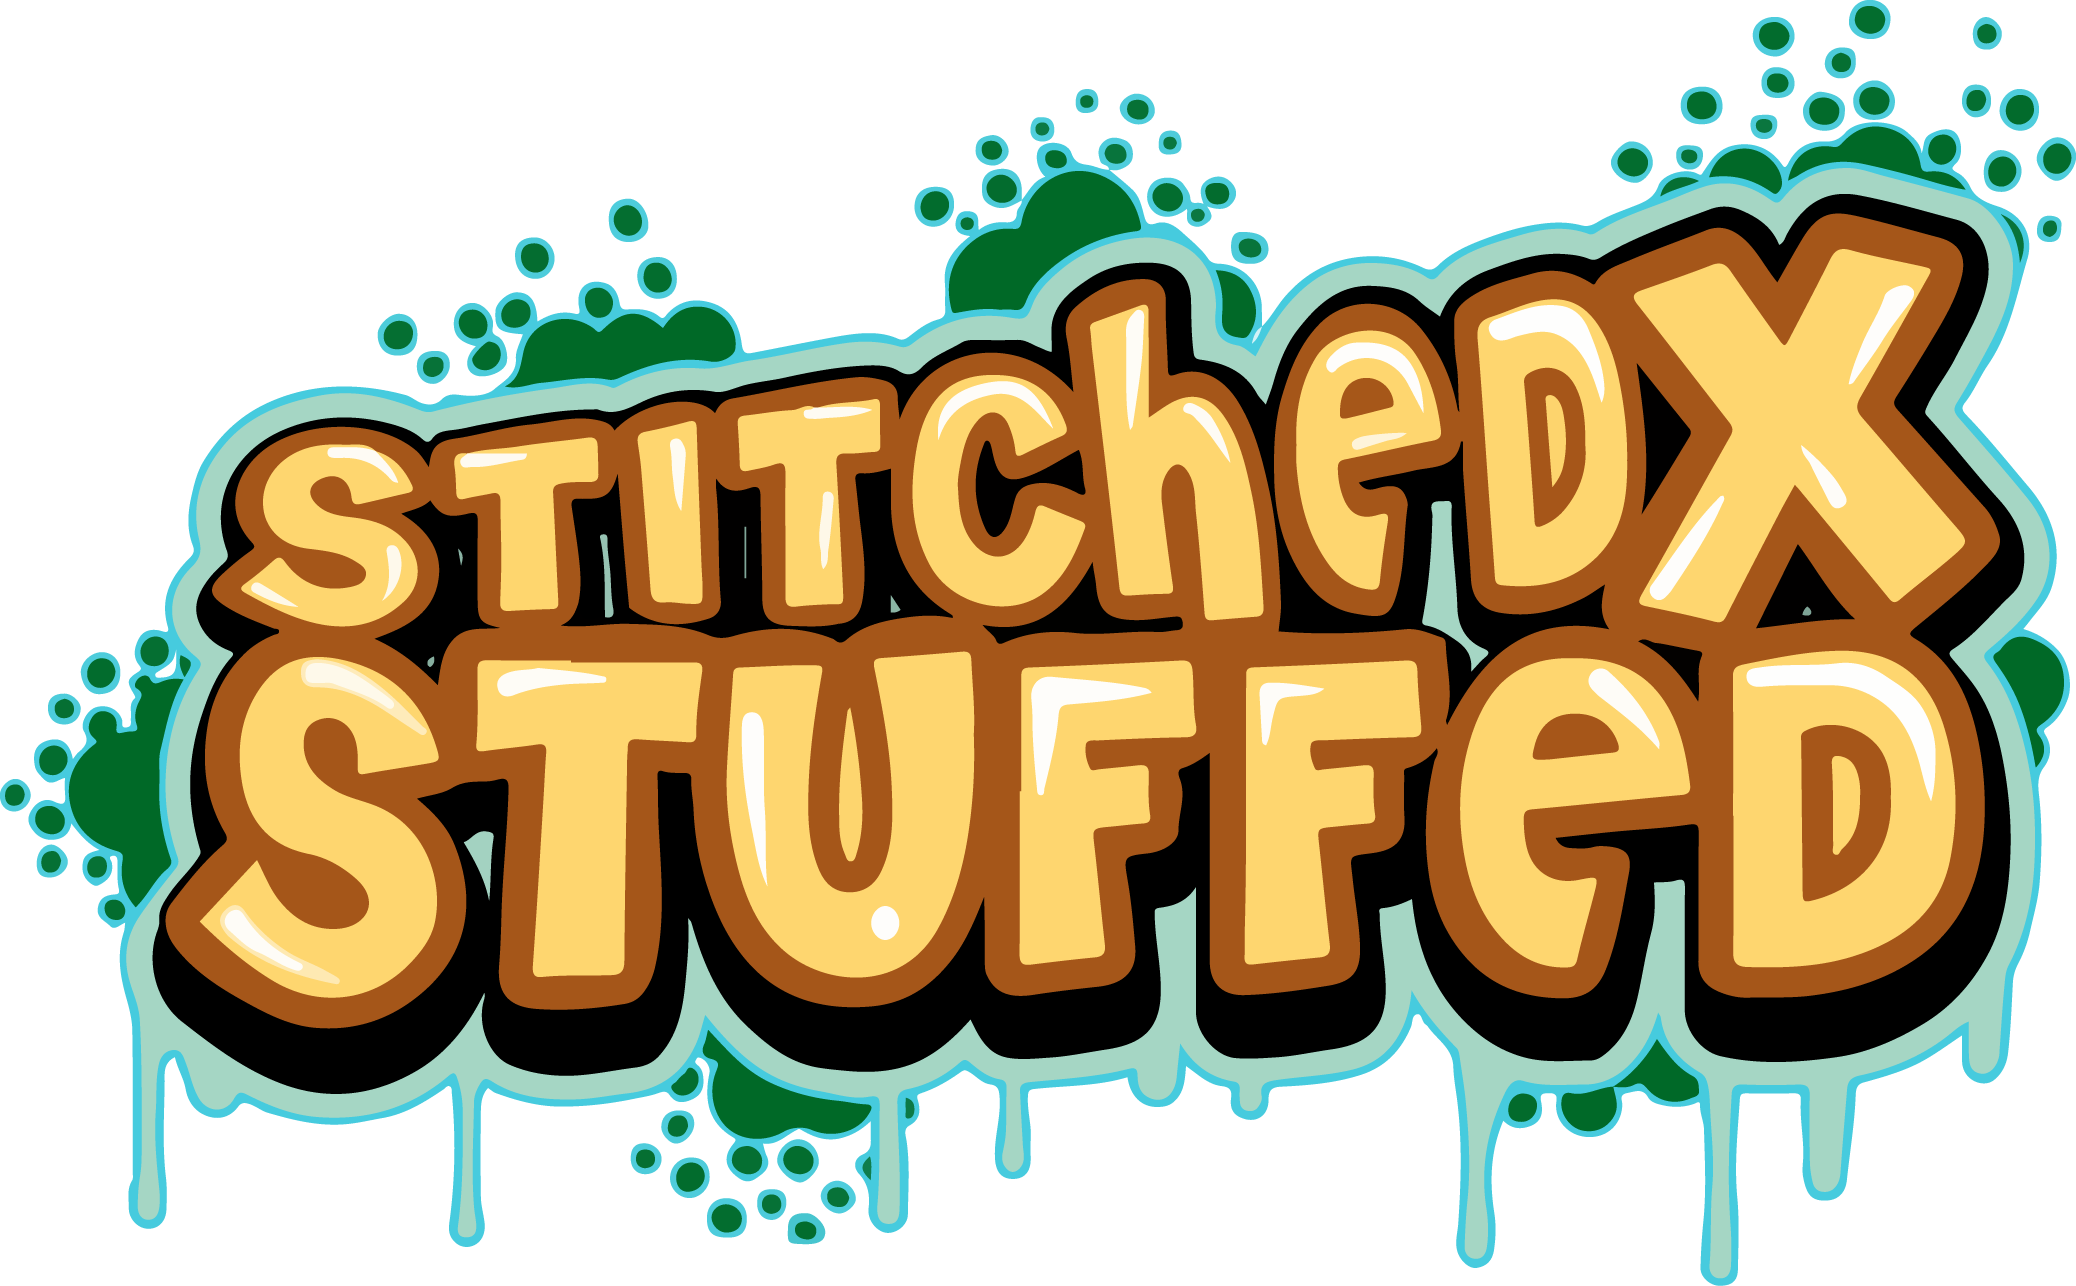 StitchedxStuffed ™